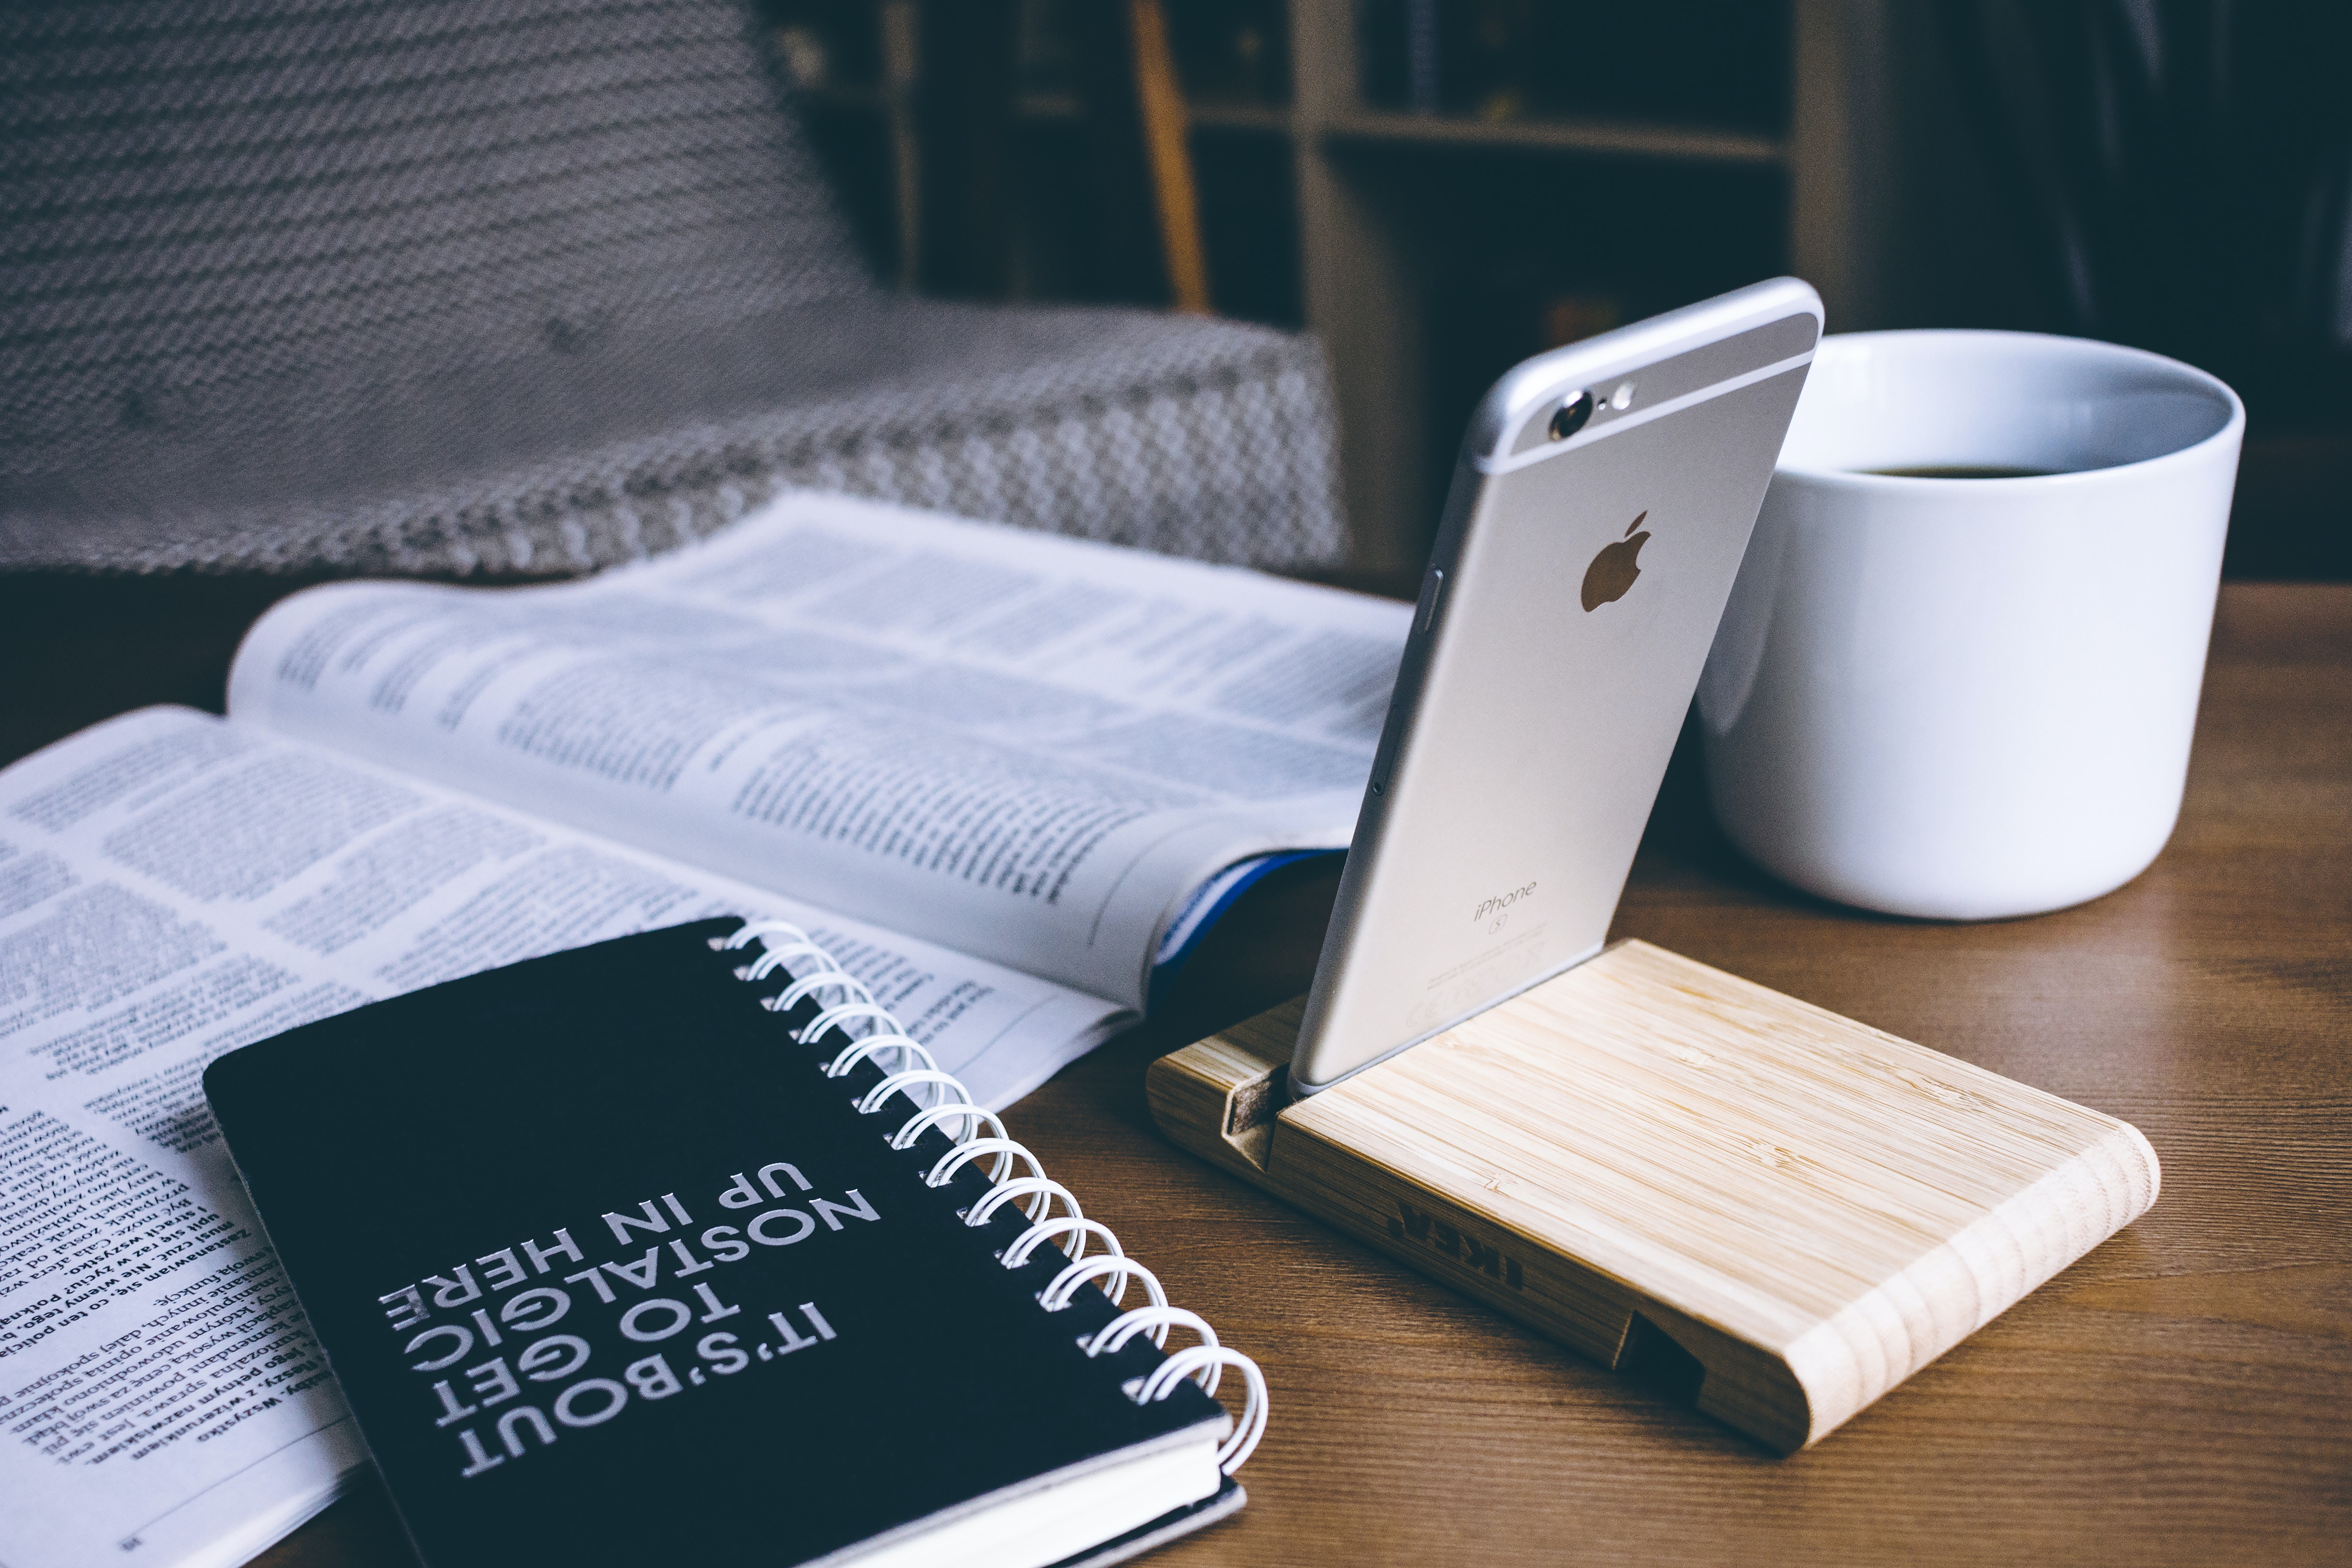 Book and Silver Iphone 6 on Top of Table · Free Stock